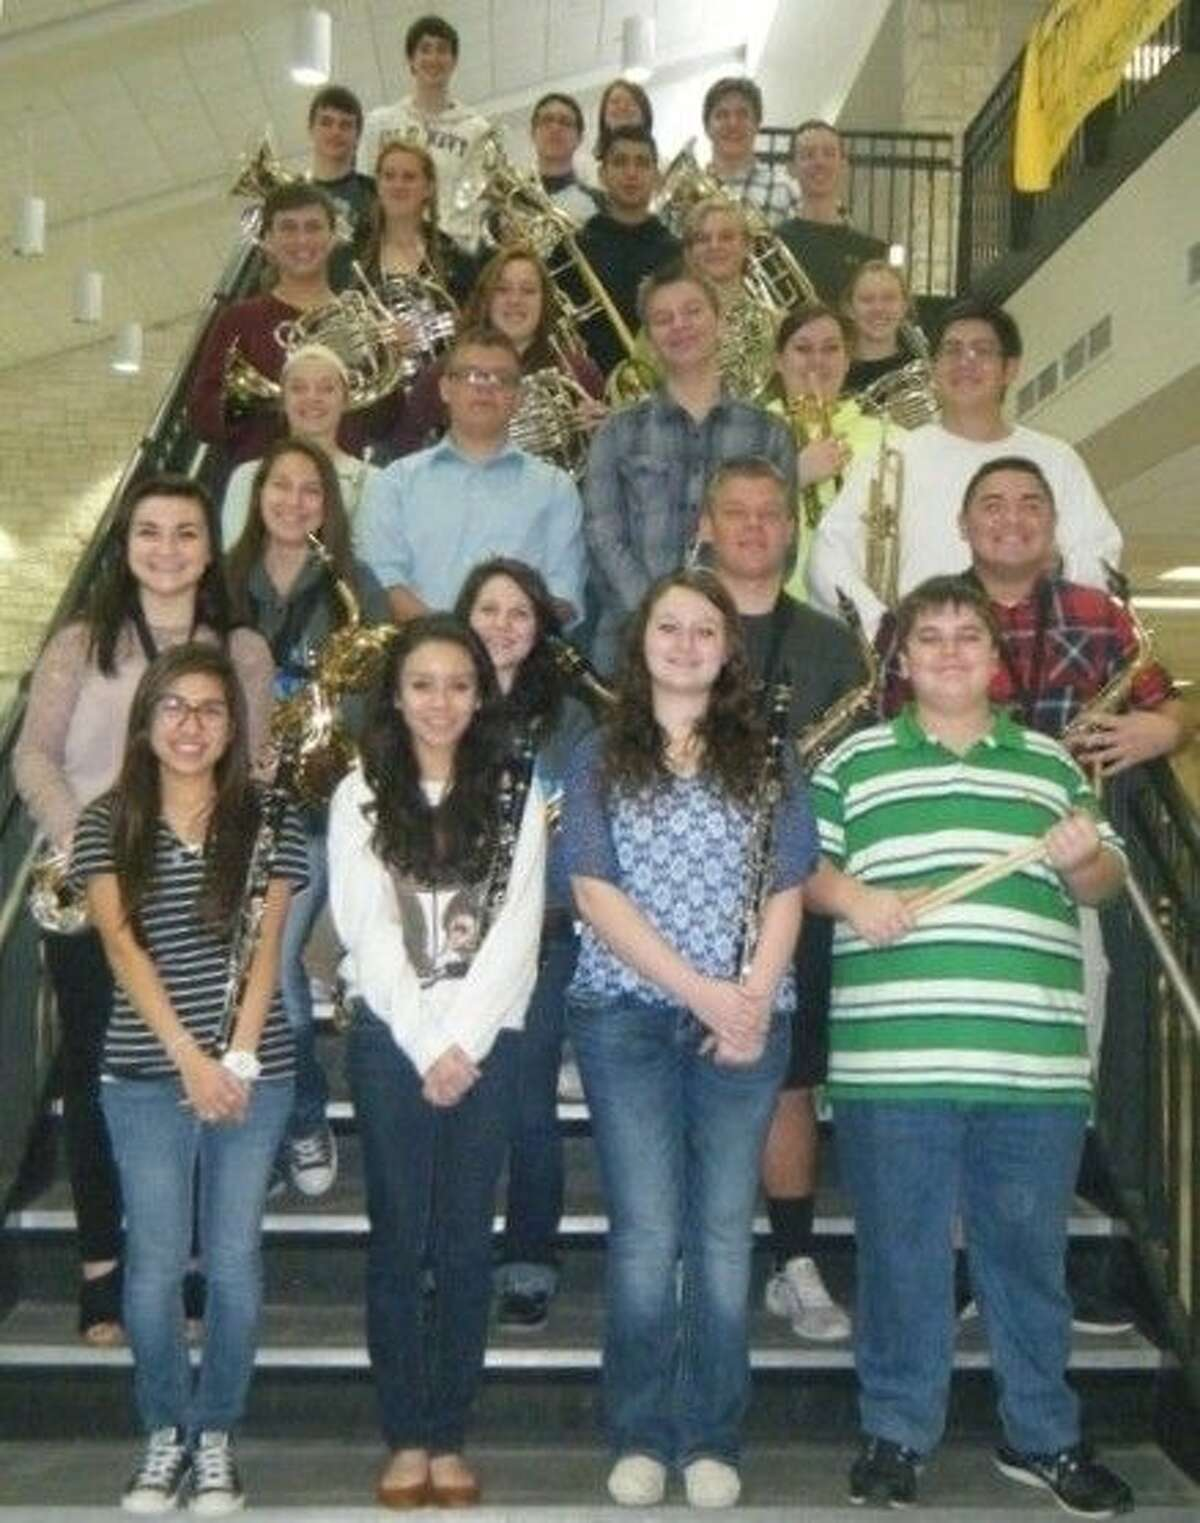 Members of the Tarkington High School Thundering Horns Band earned 33 Superior medals at the Feb. 20 UIL Region 9 Solo and Ensemble competition.